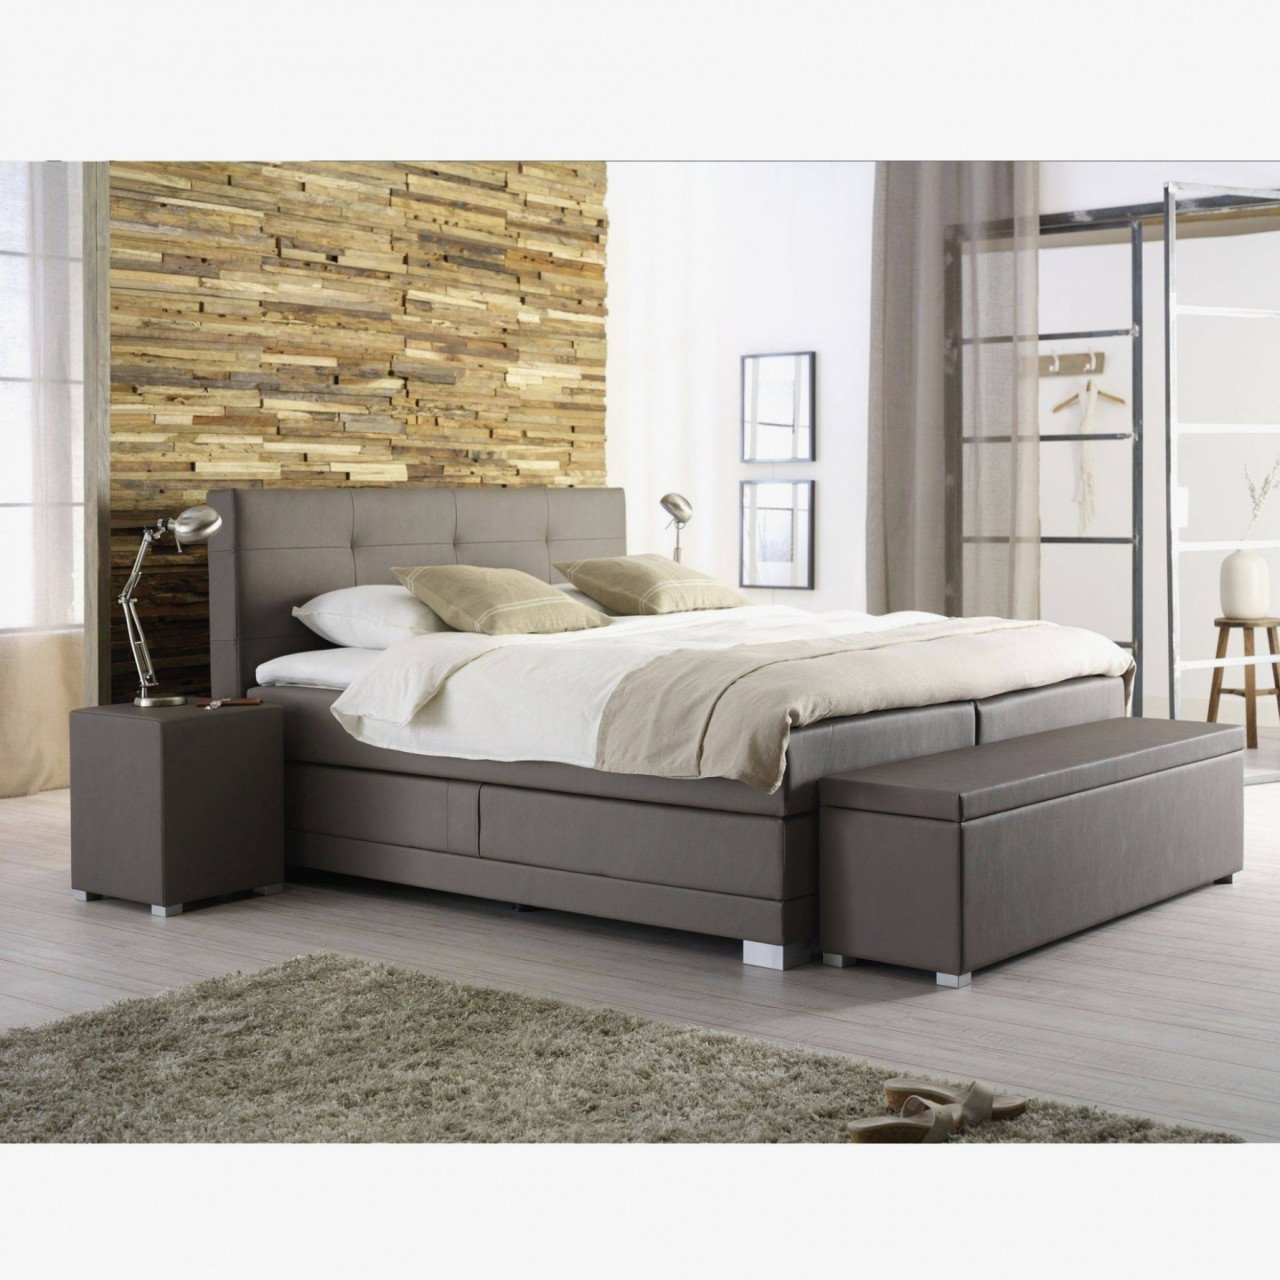 Queen Platform Bedroom Set Awesome Bed with Drawers Under — Procura Home Blog